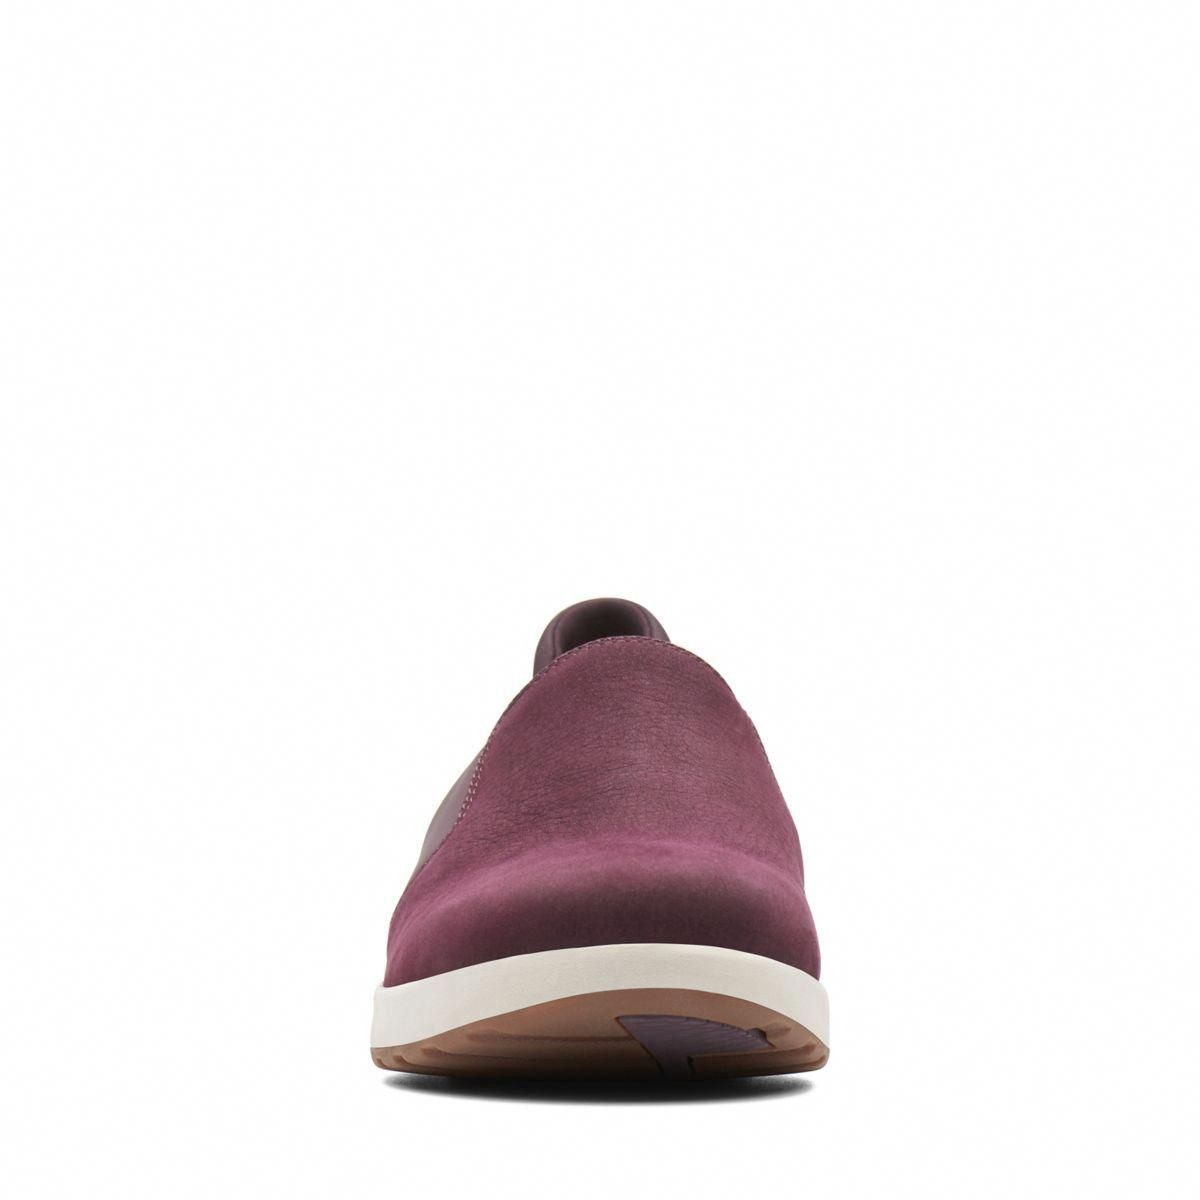 249c0b4ec Clarks Un Adorn Step - Womens Shoes Aubergine 7.5 E (Wide) Out Of Stock   Womensshoes8.5Narrow